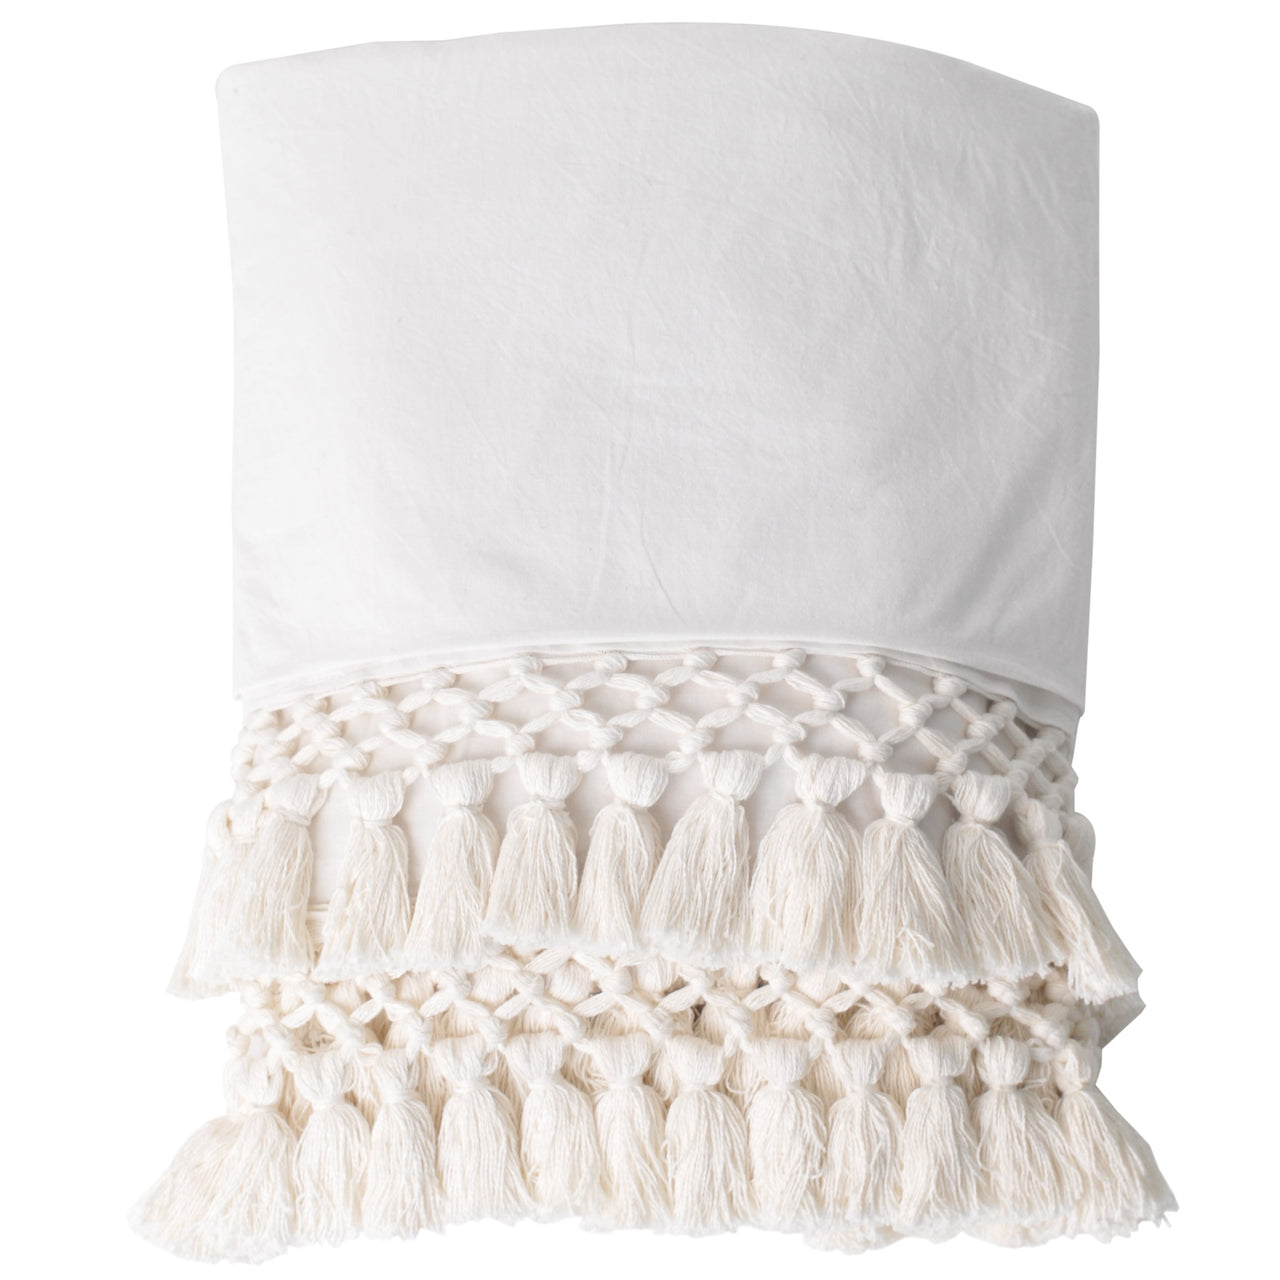 macrame throw white ivory bed cover coverlet blanket trim pom pom tassels